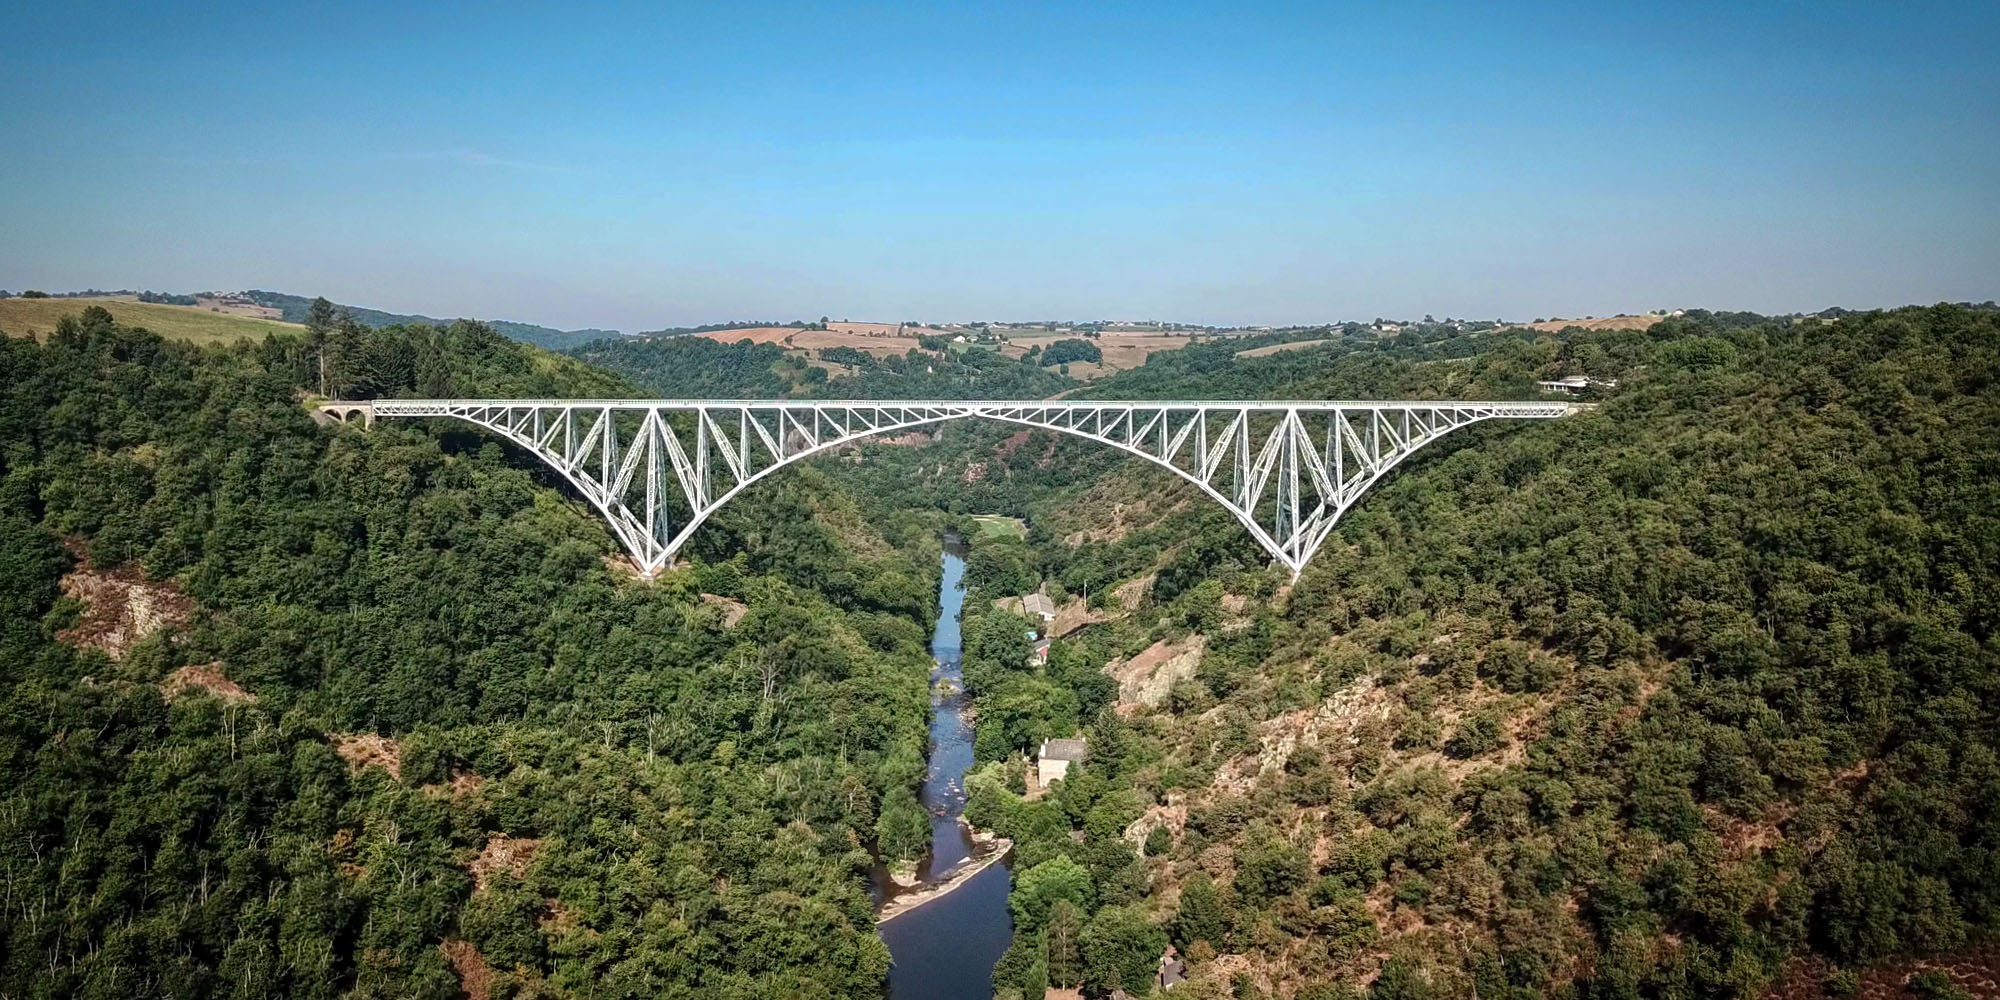 Aerial view of the Viaur Viaduct on a sunny August morning